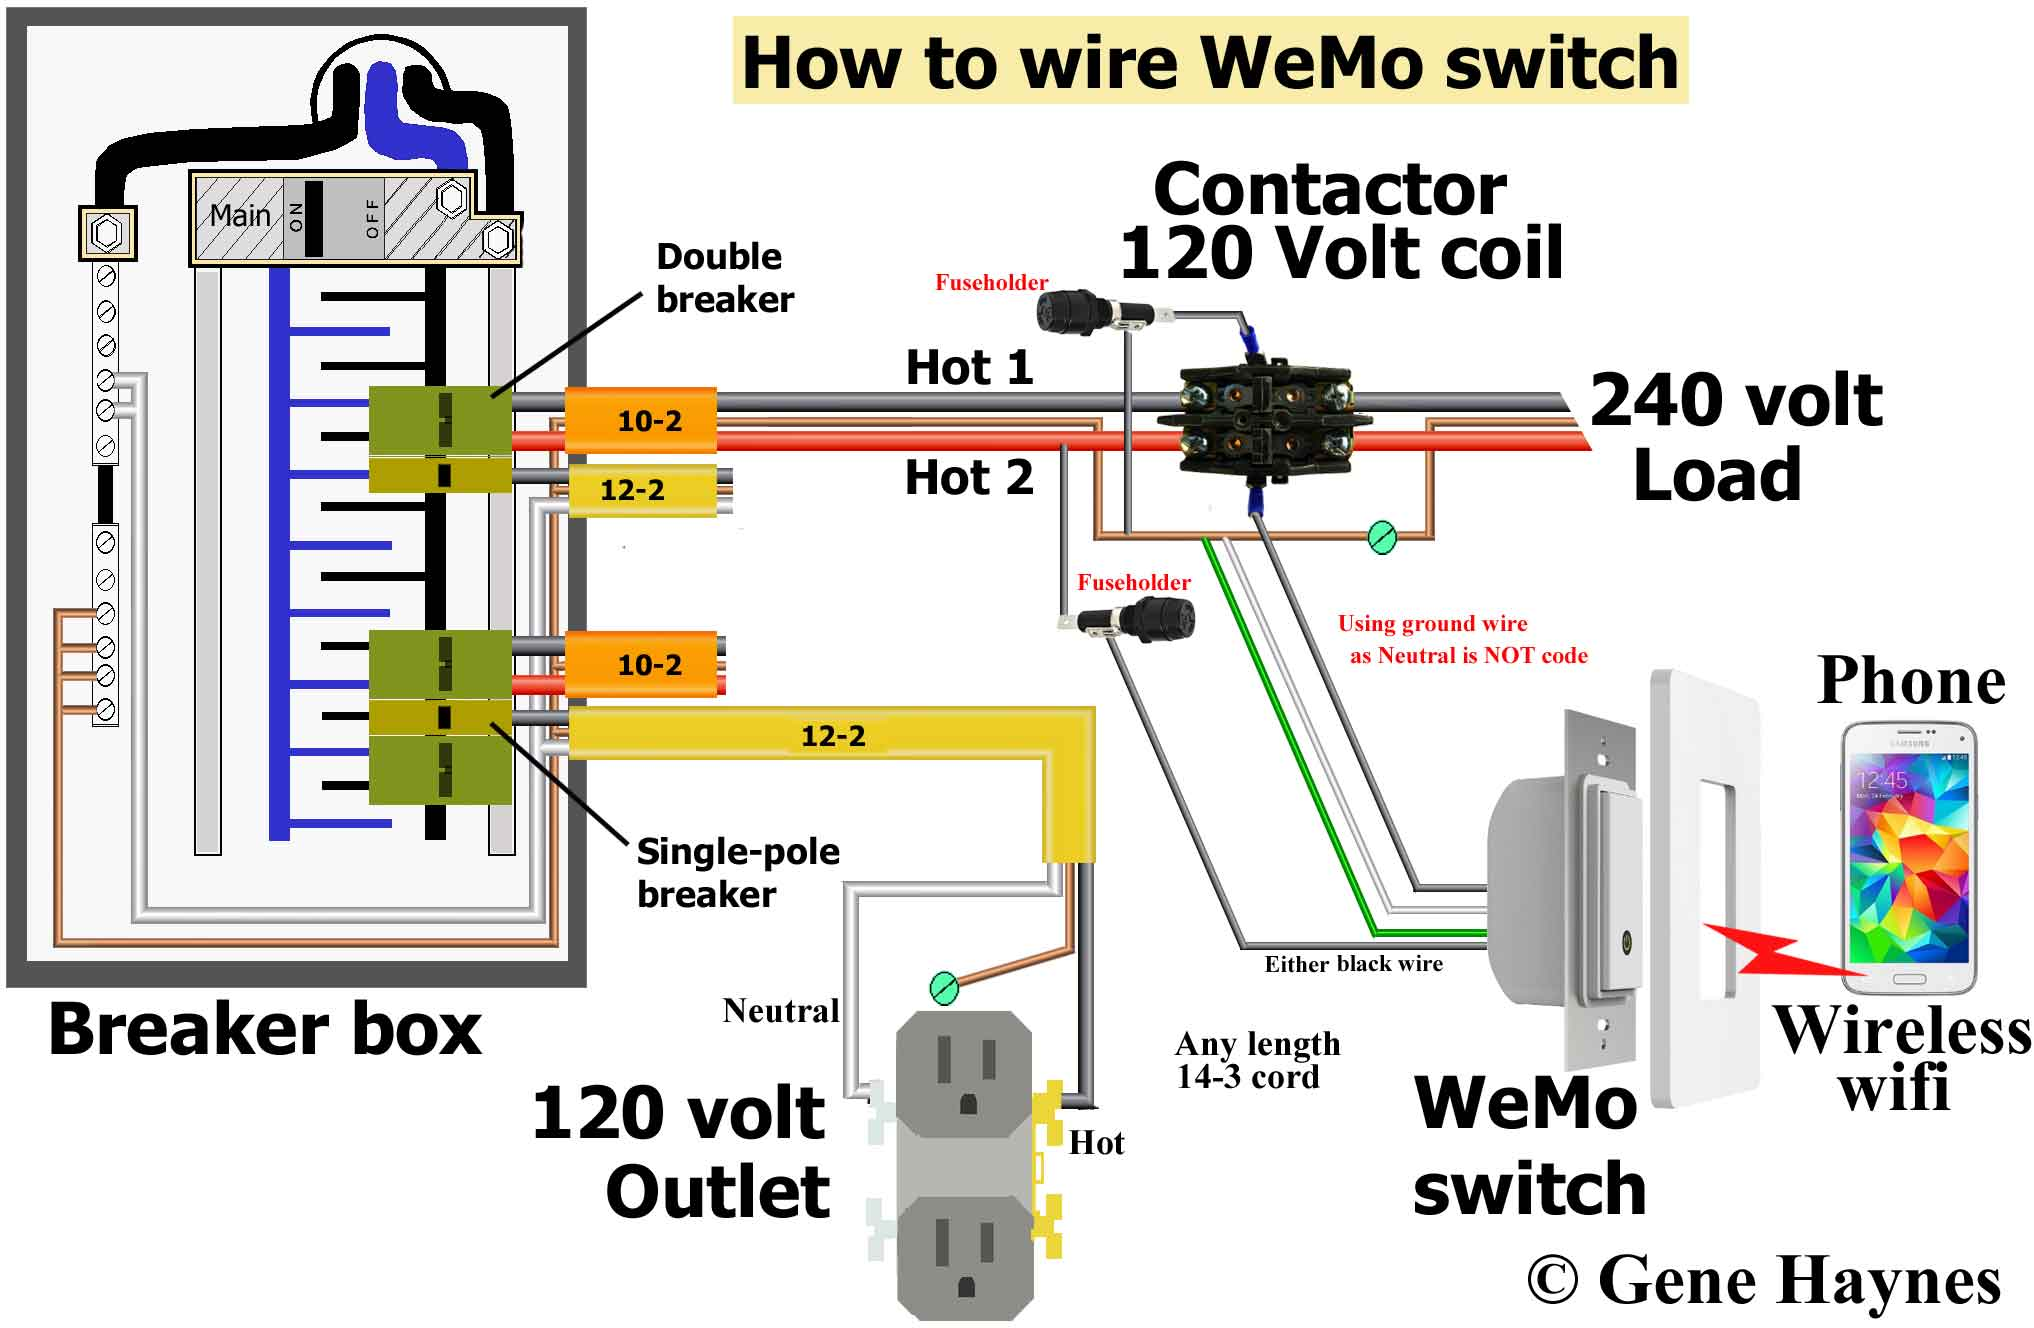 WeMo switch wiring illustration 33 not code control 240 volt with wemo wemo switch wiring diagram at suagrazia.org